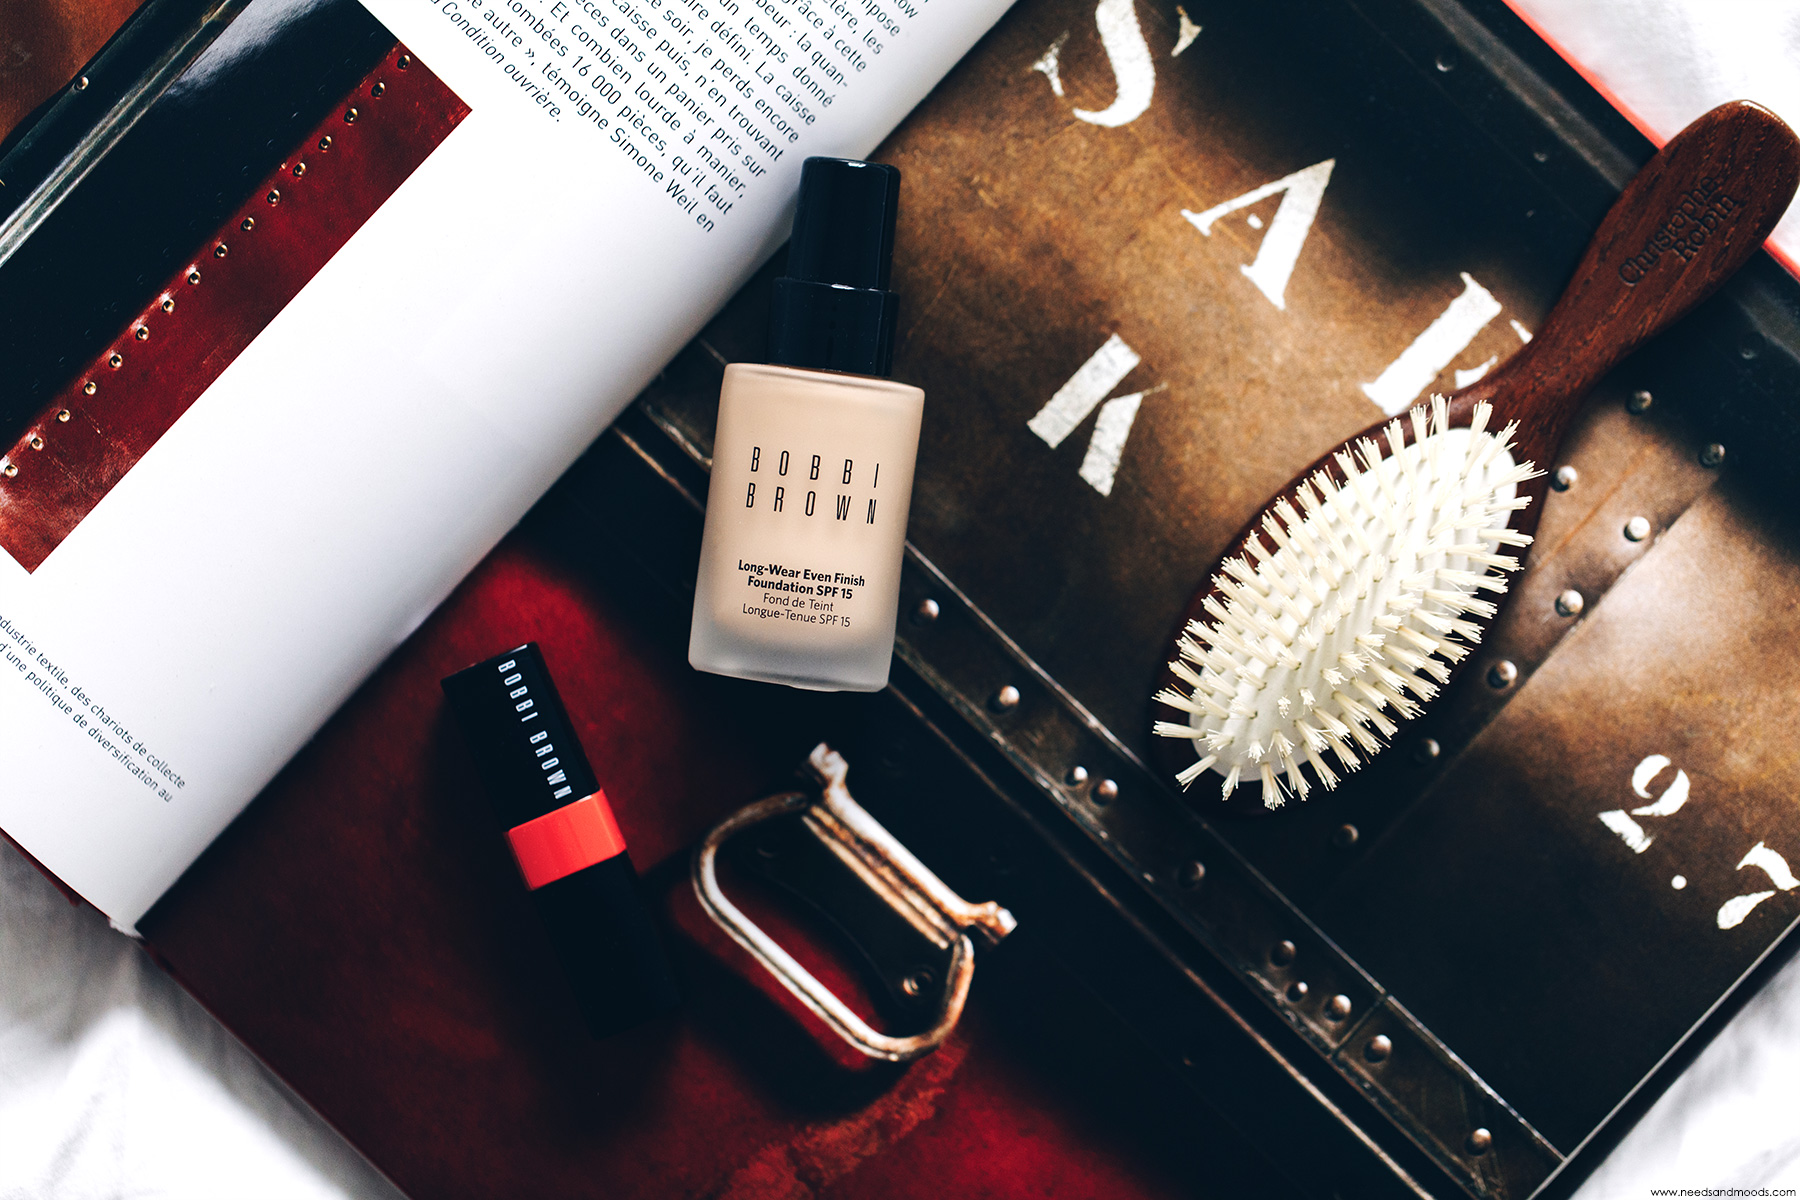 bobbi brown fond de teint avis